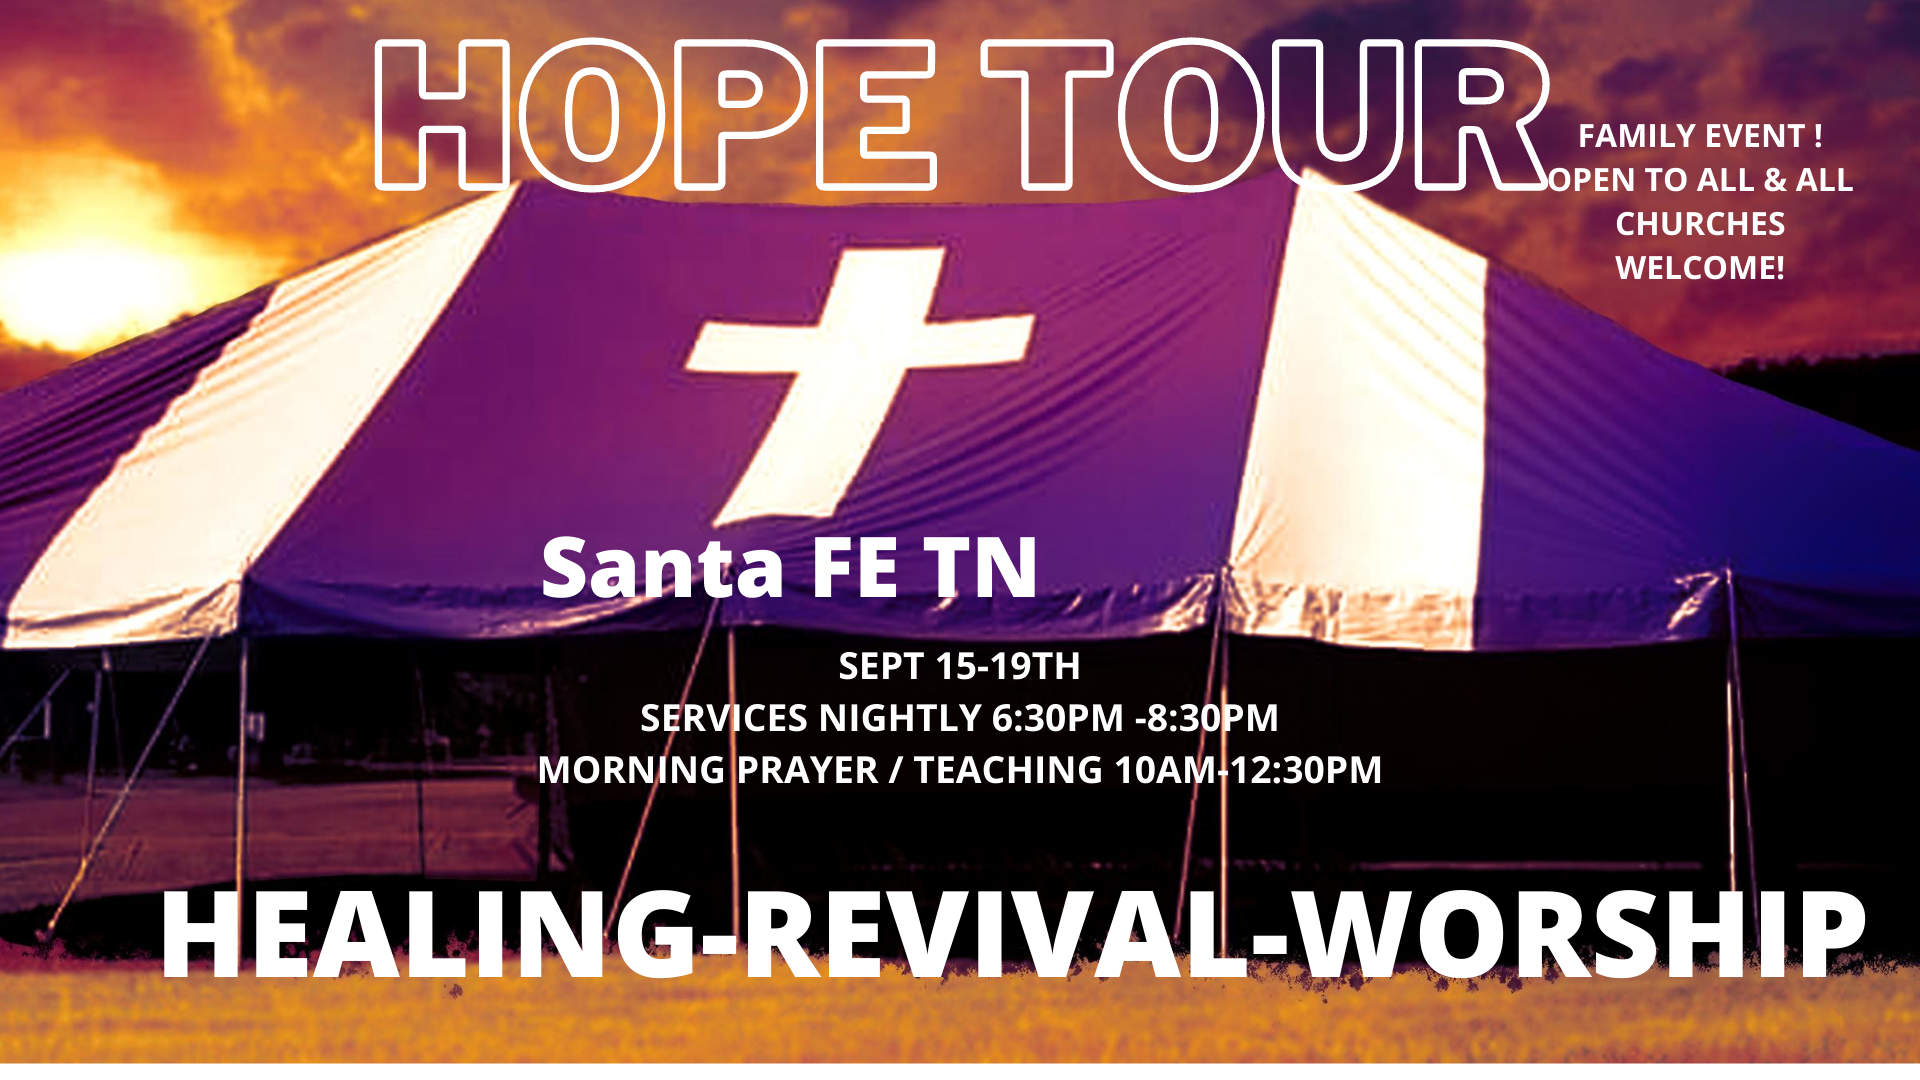 God Sent A Revival Tent Hope Tour Santa Fe Tennessee  2020